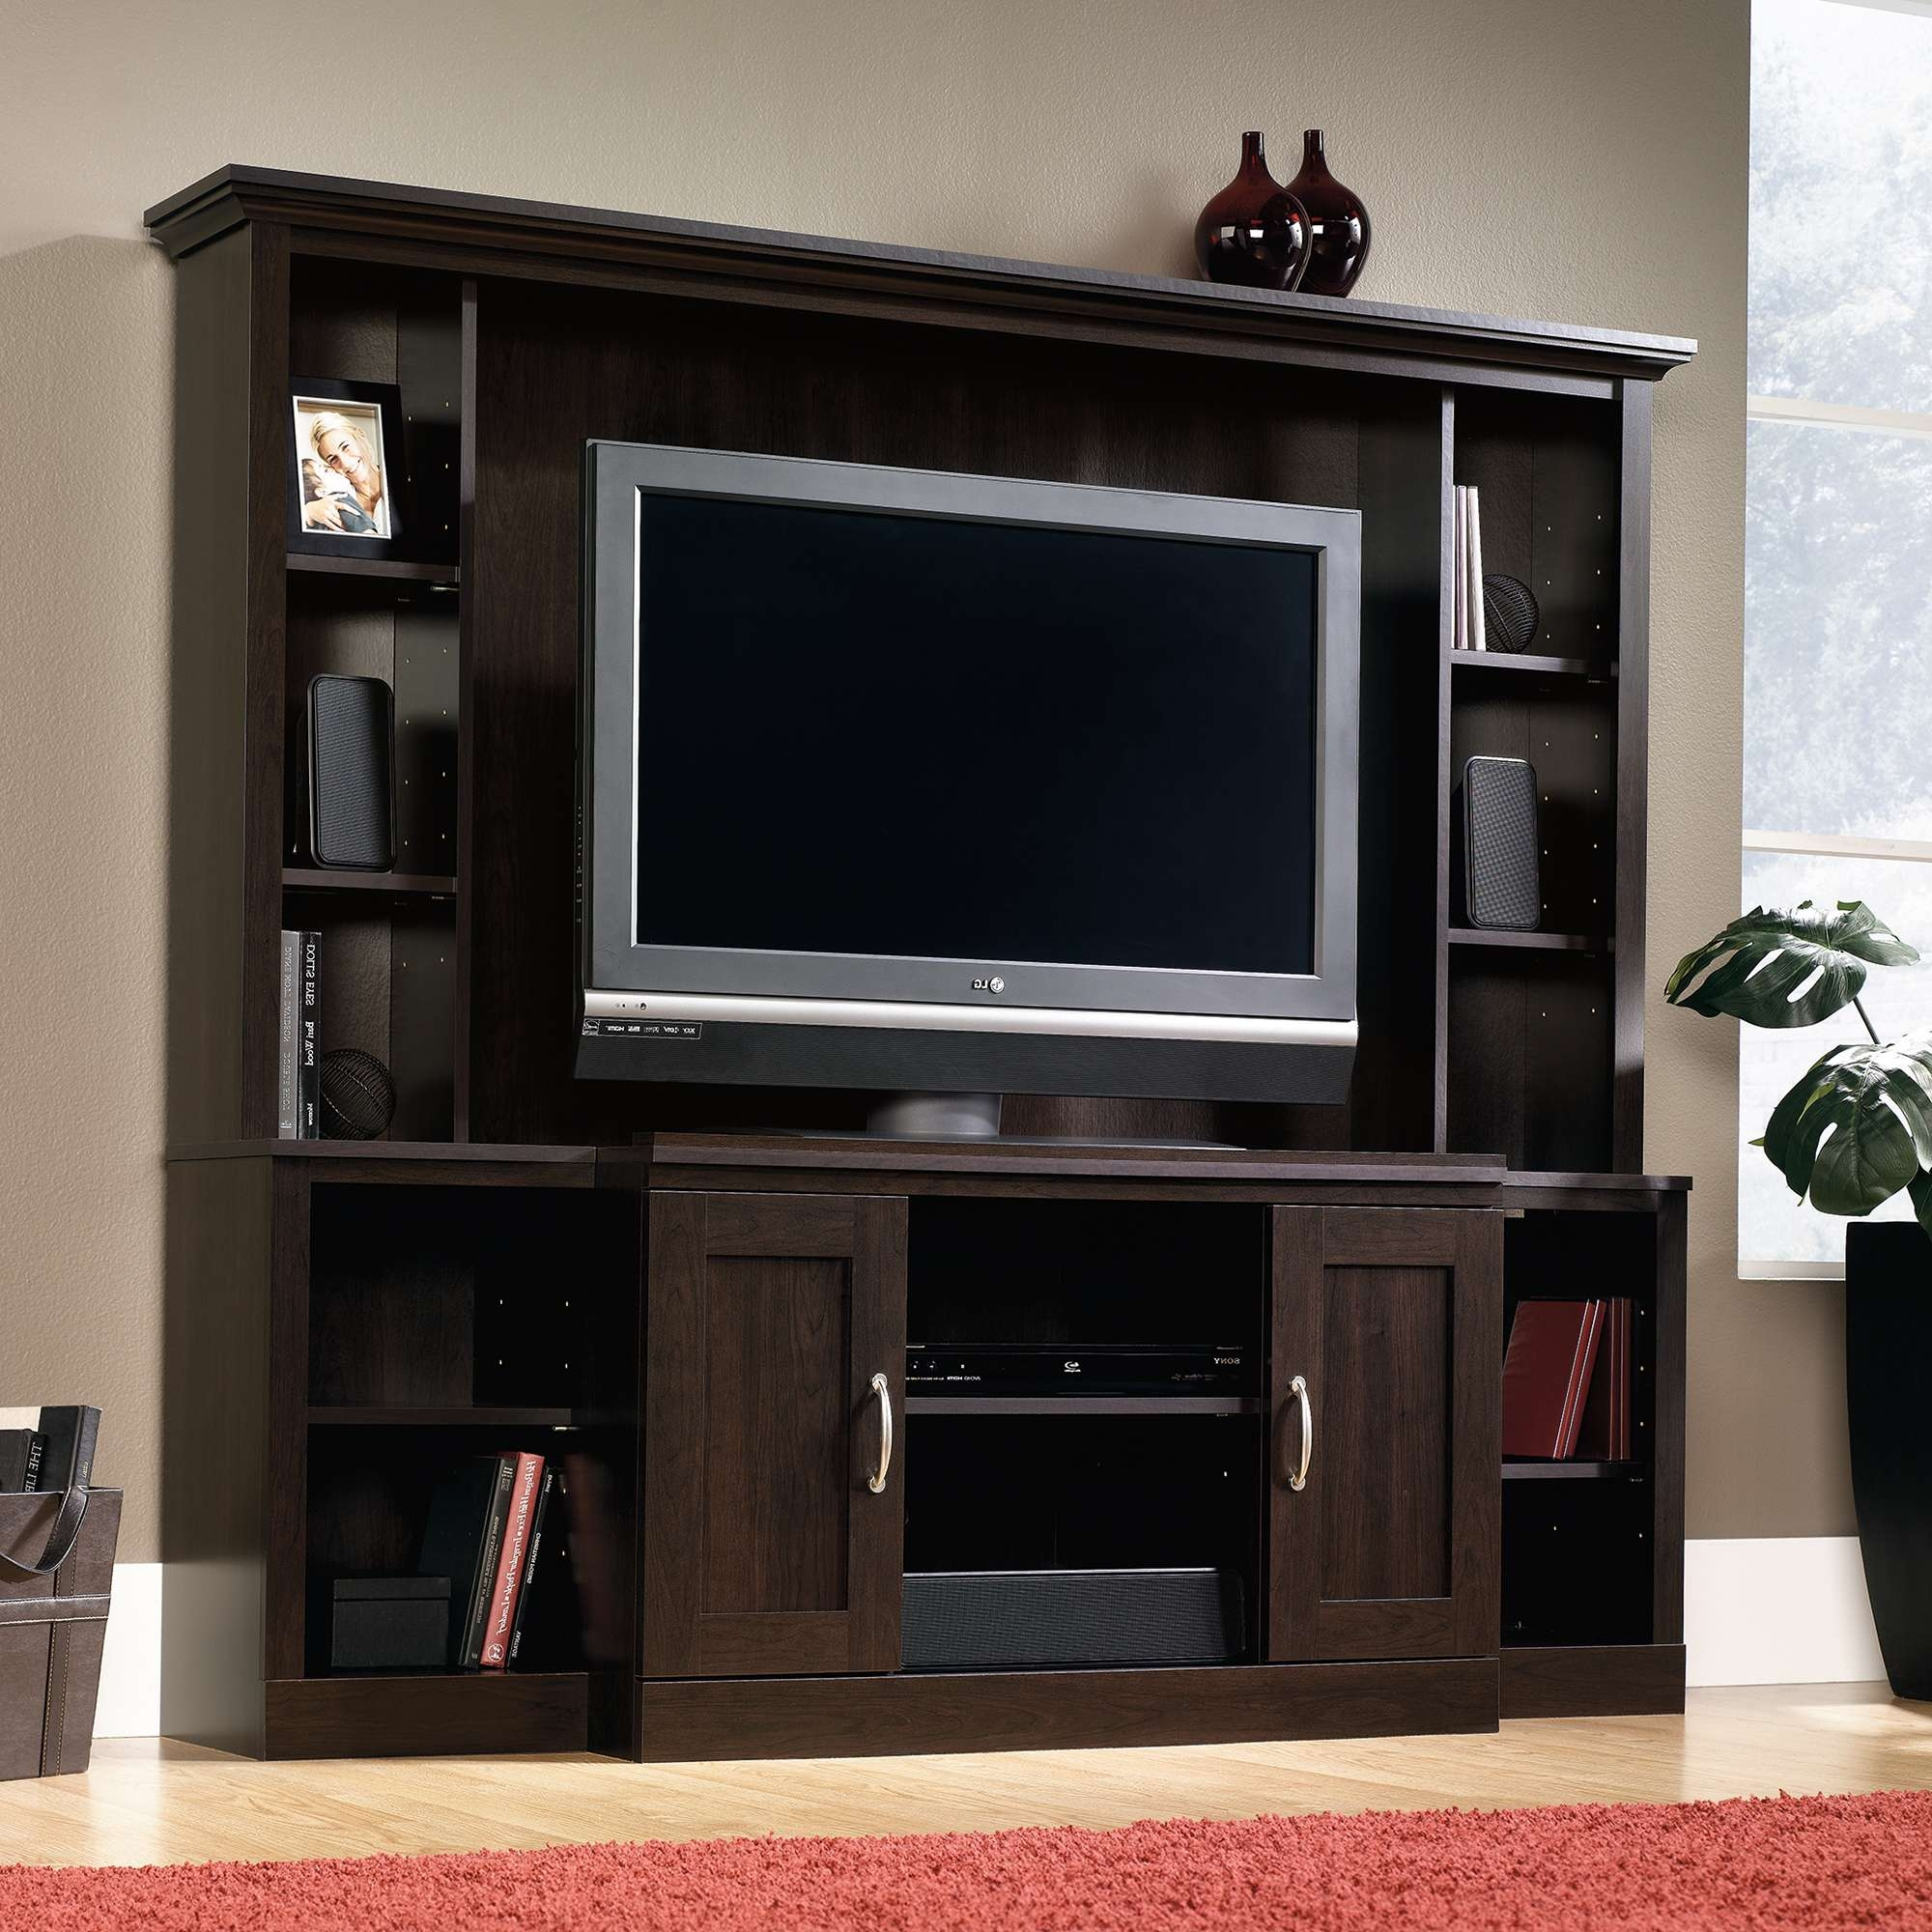 Trendy Espresso Wood Entertainment Center With Flat Screen Tv Pertaining To Entertainment Center Tv Stands (View 6 of 15)